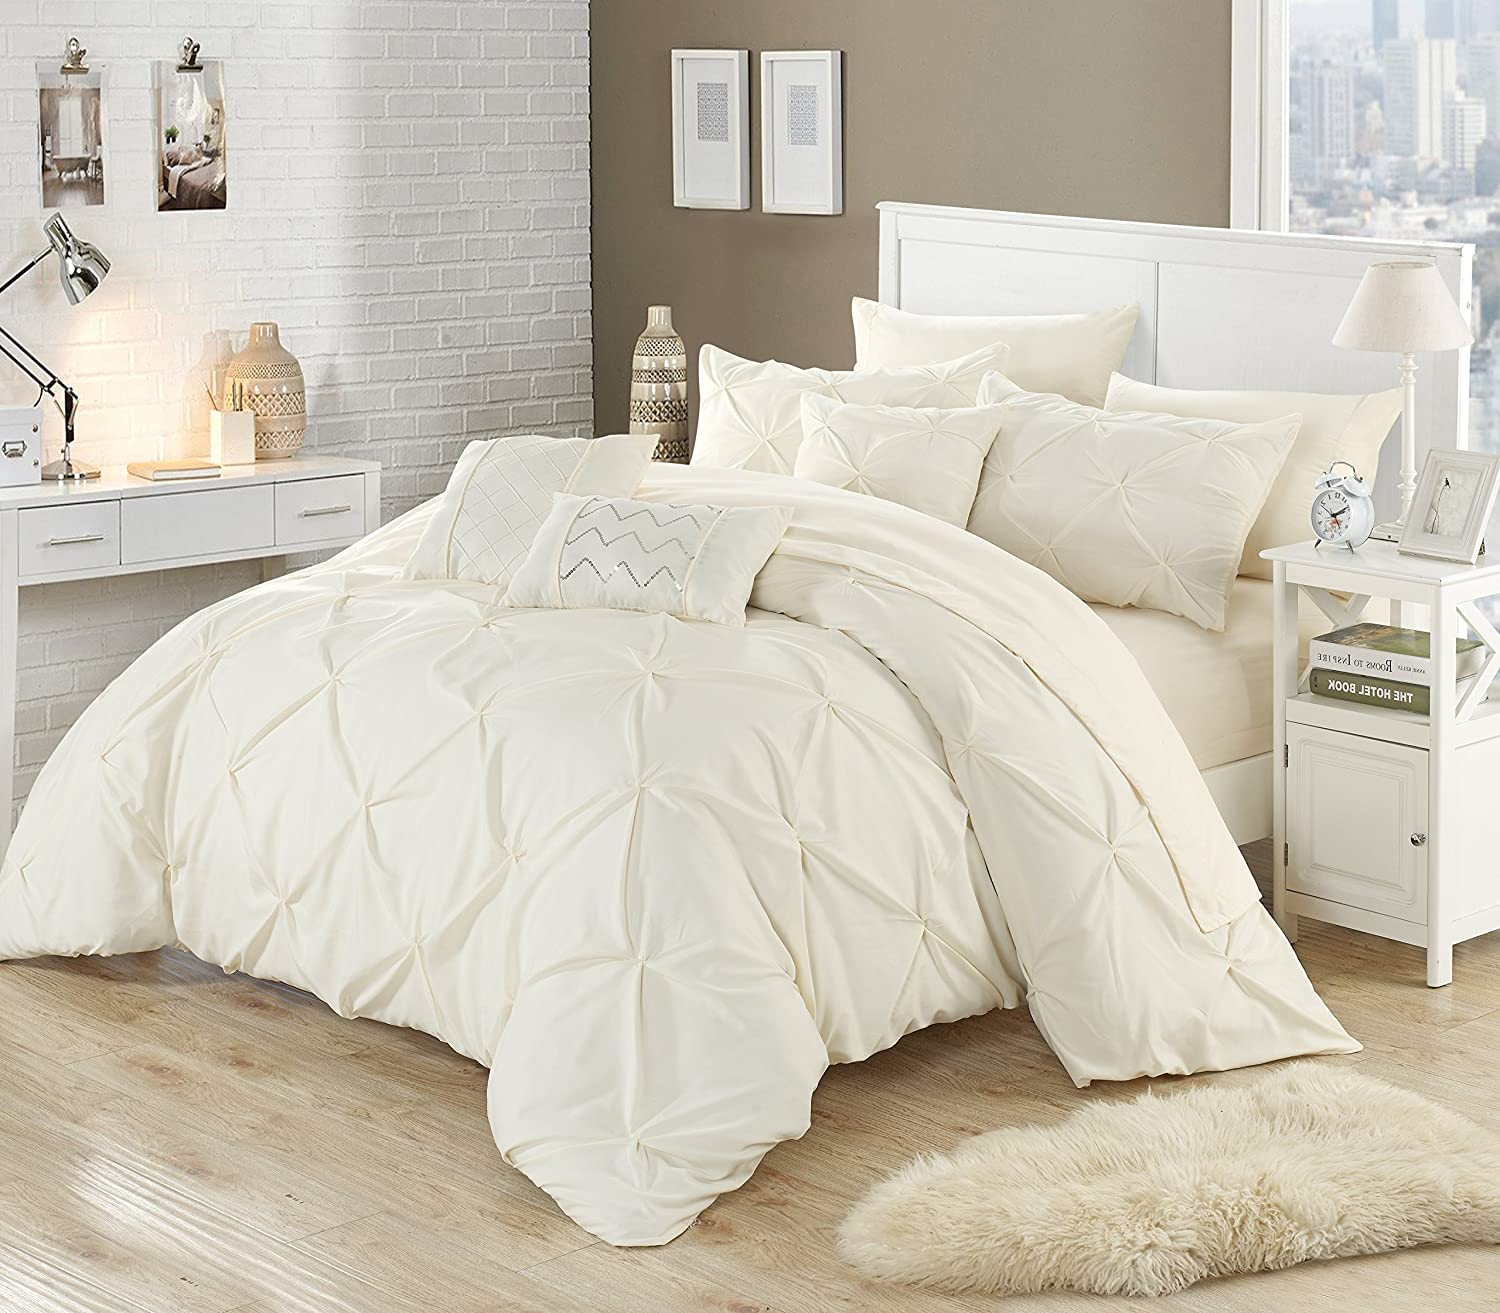 Chic Home 8 Piece Zita Pinch Pleated, ruffled and pleated complete Twin Bed In a Bag Comforter Set Beige Sheets set and Decorative pillows included